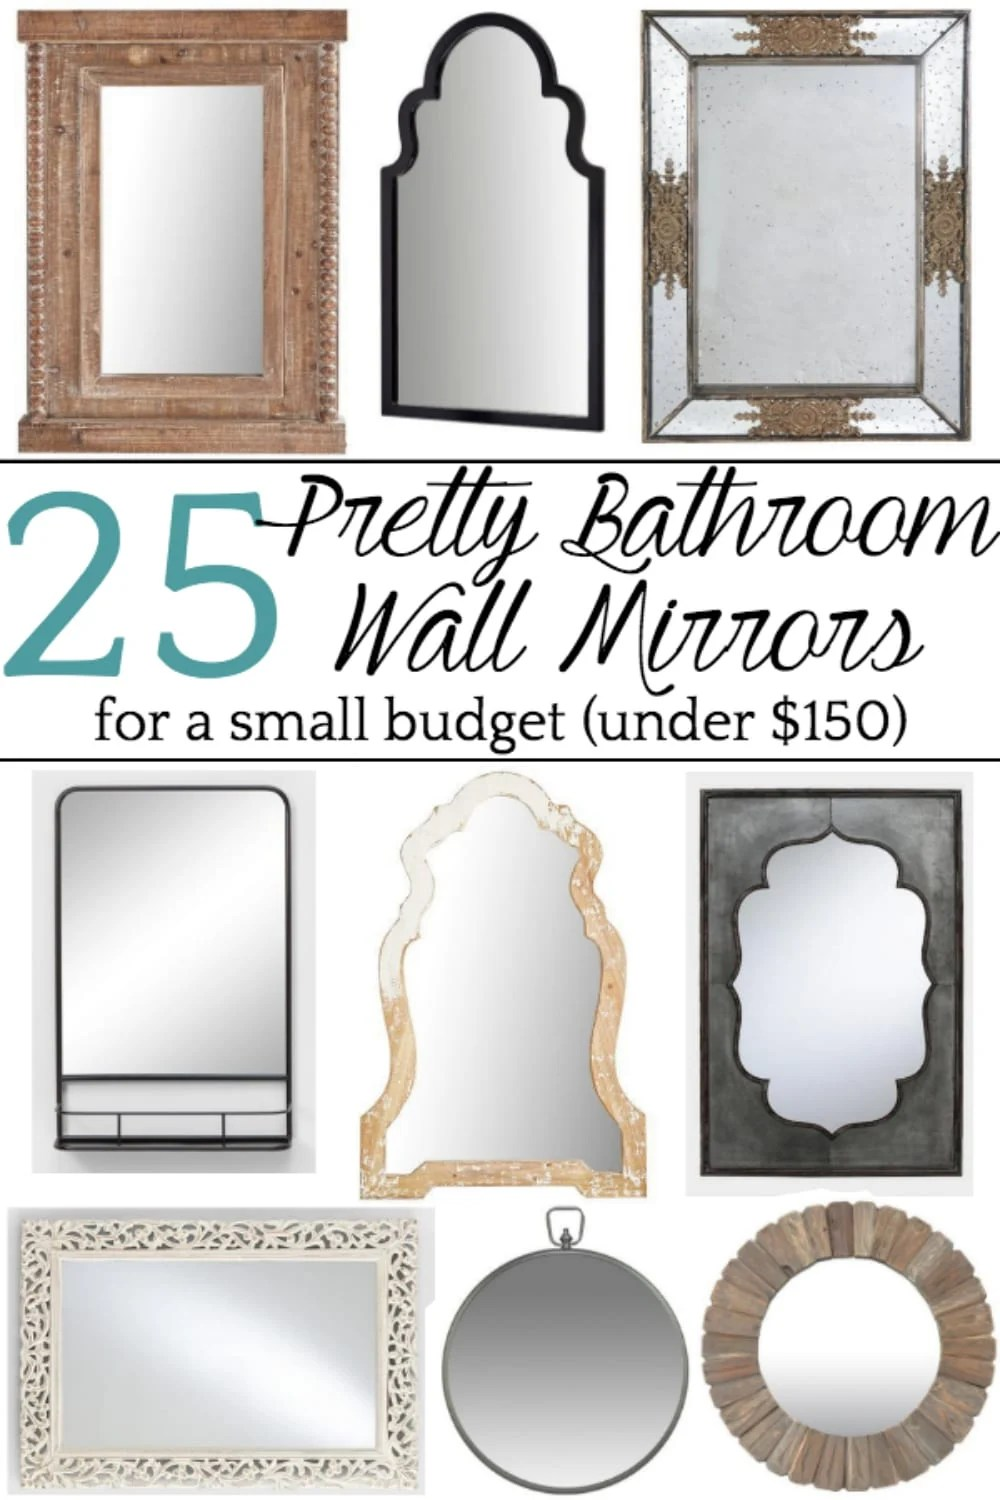 A round-up shopping guide with 25 unique bathroom mirrors for less than $150 to add interest and texture. #bathroommirrors